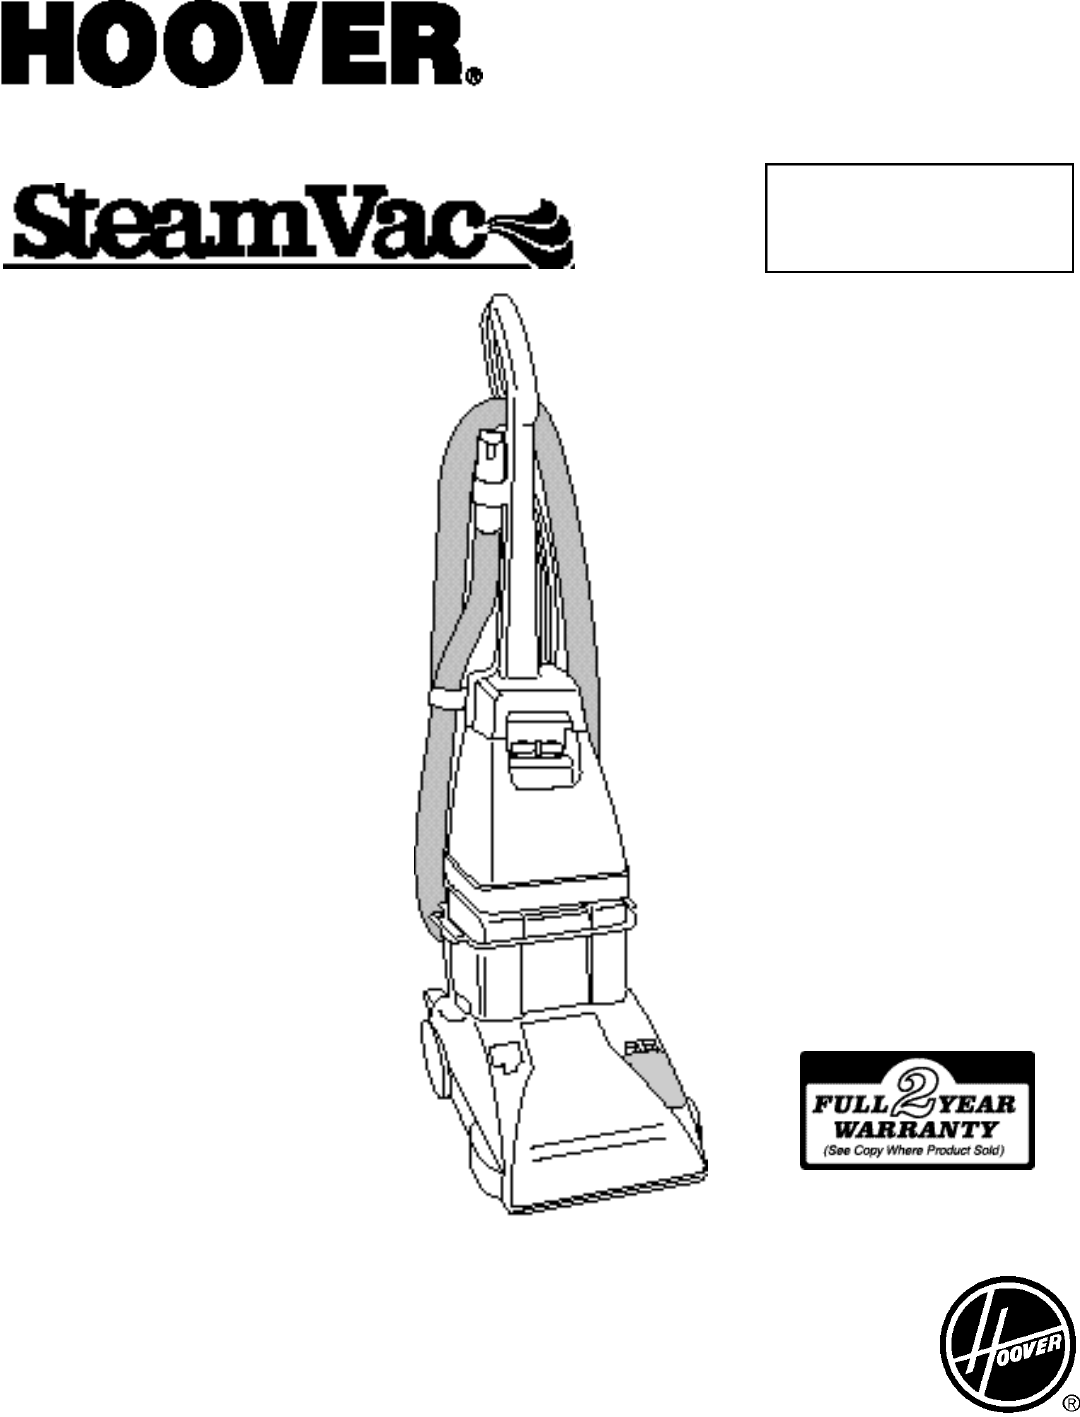 Hoover steamvac deluxe f5855 manual